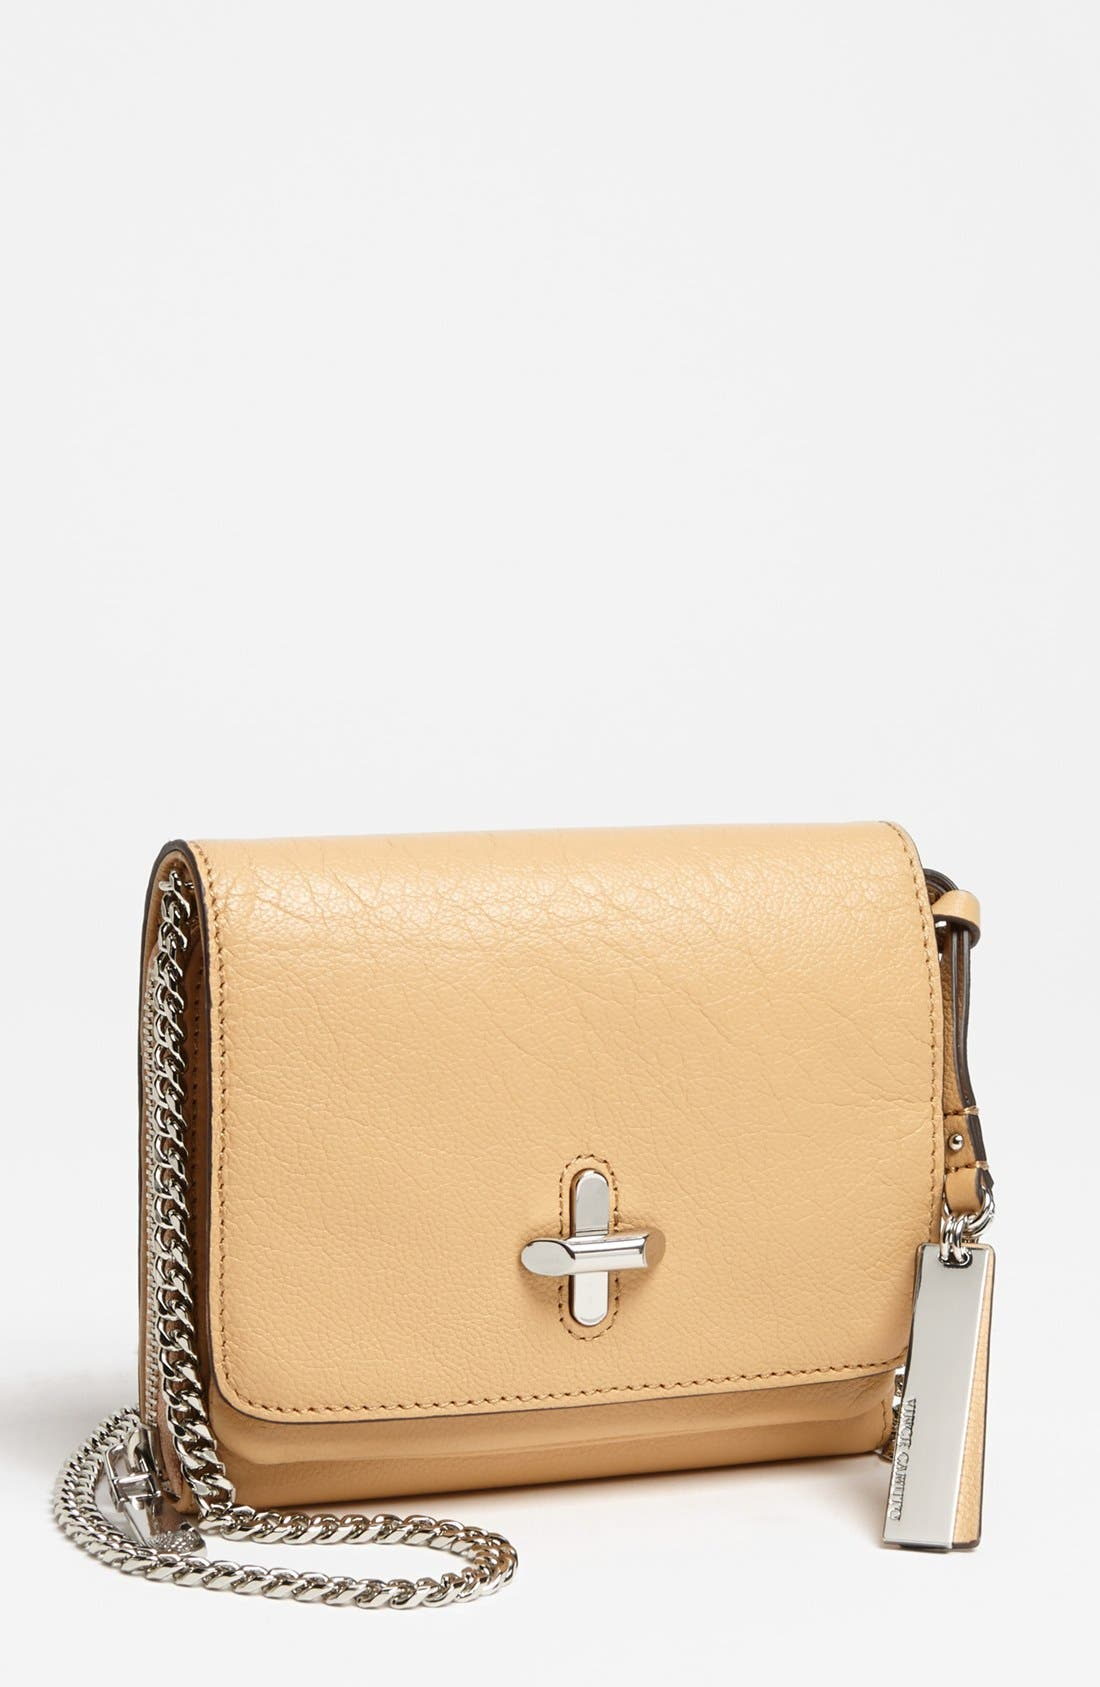 Alternate Image 1 Selected - Vince Camuto 'Lexi' Crossbody Bag